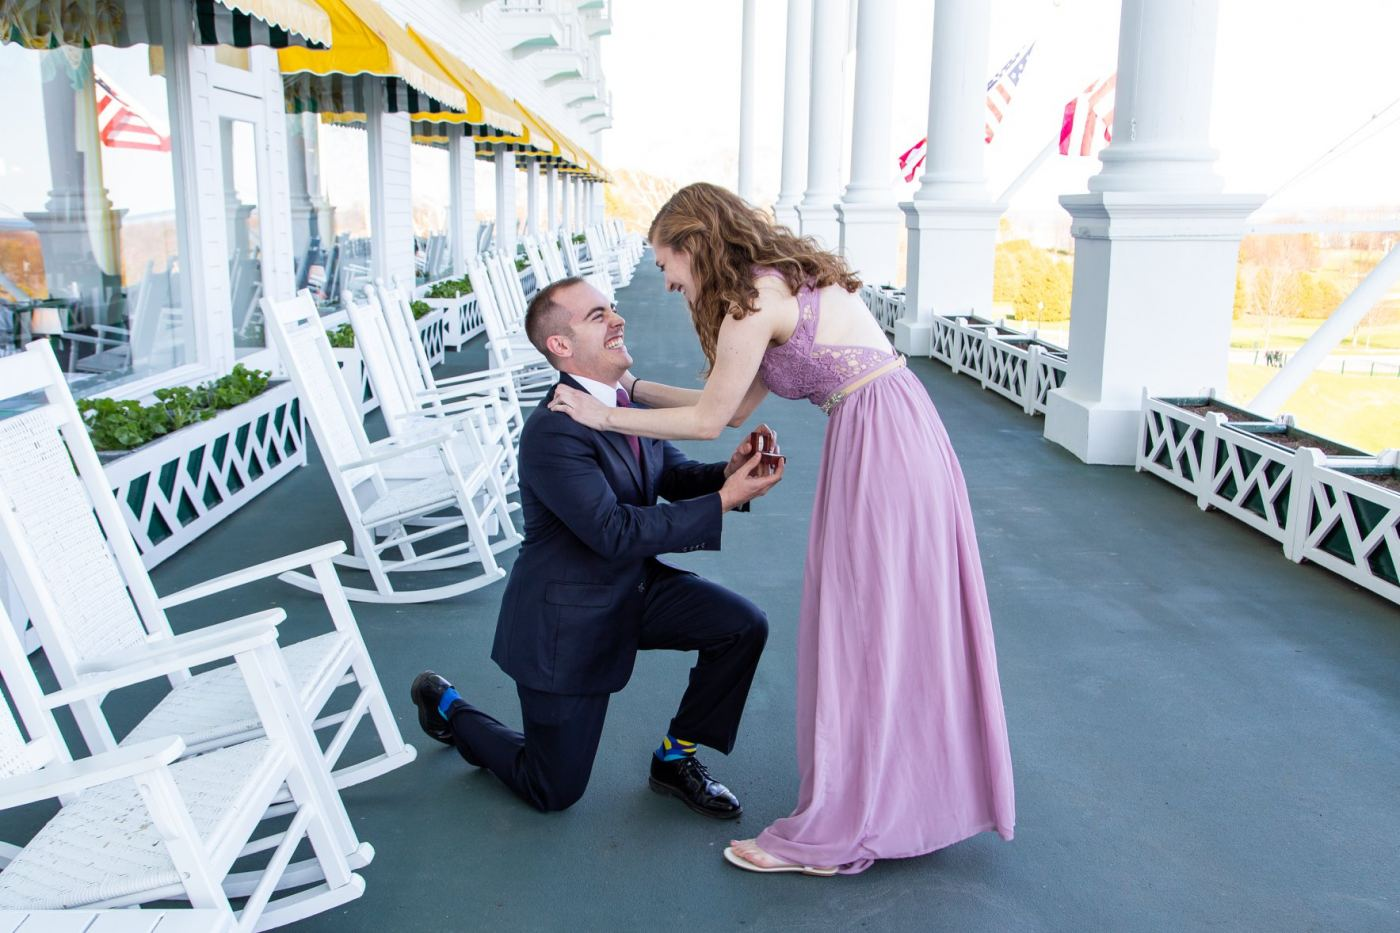 Clever marriage proposal at Grand Hotel captured in photos